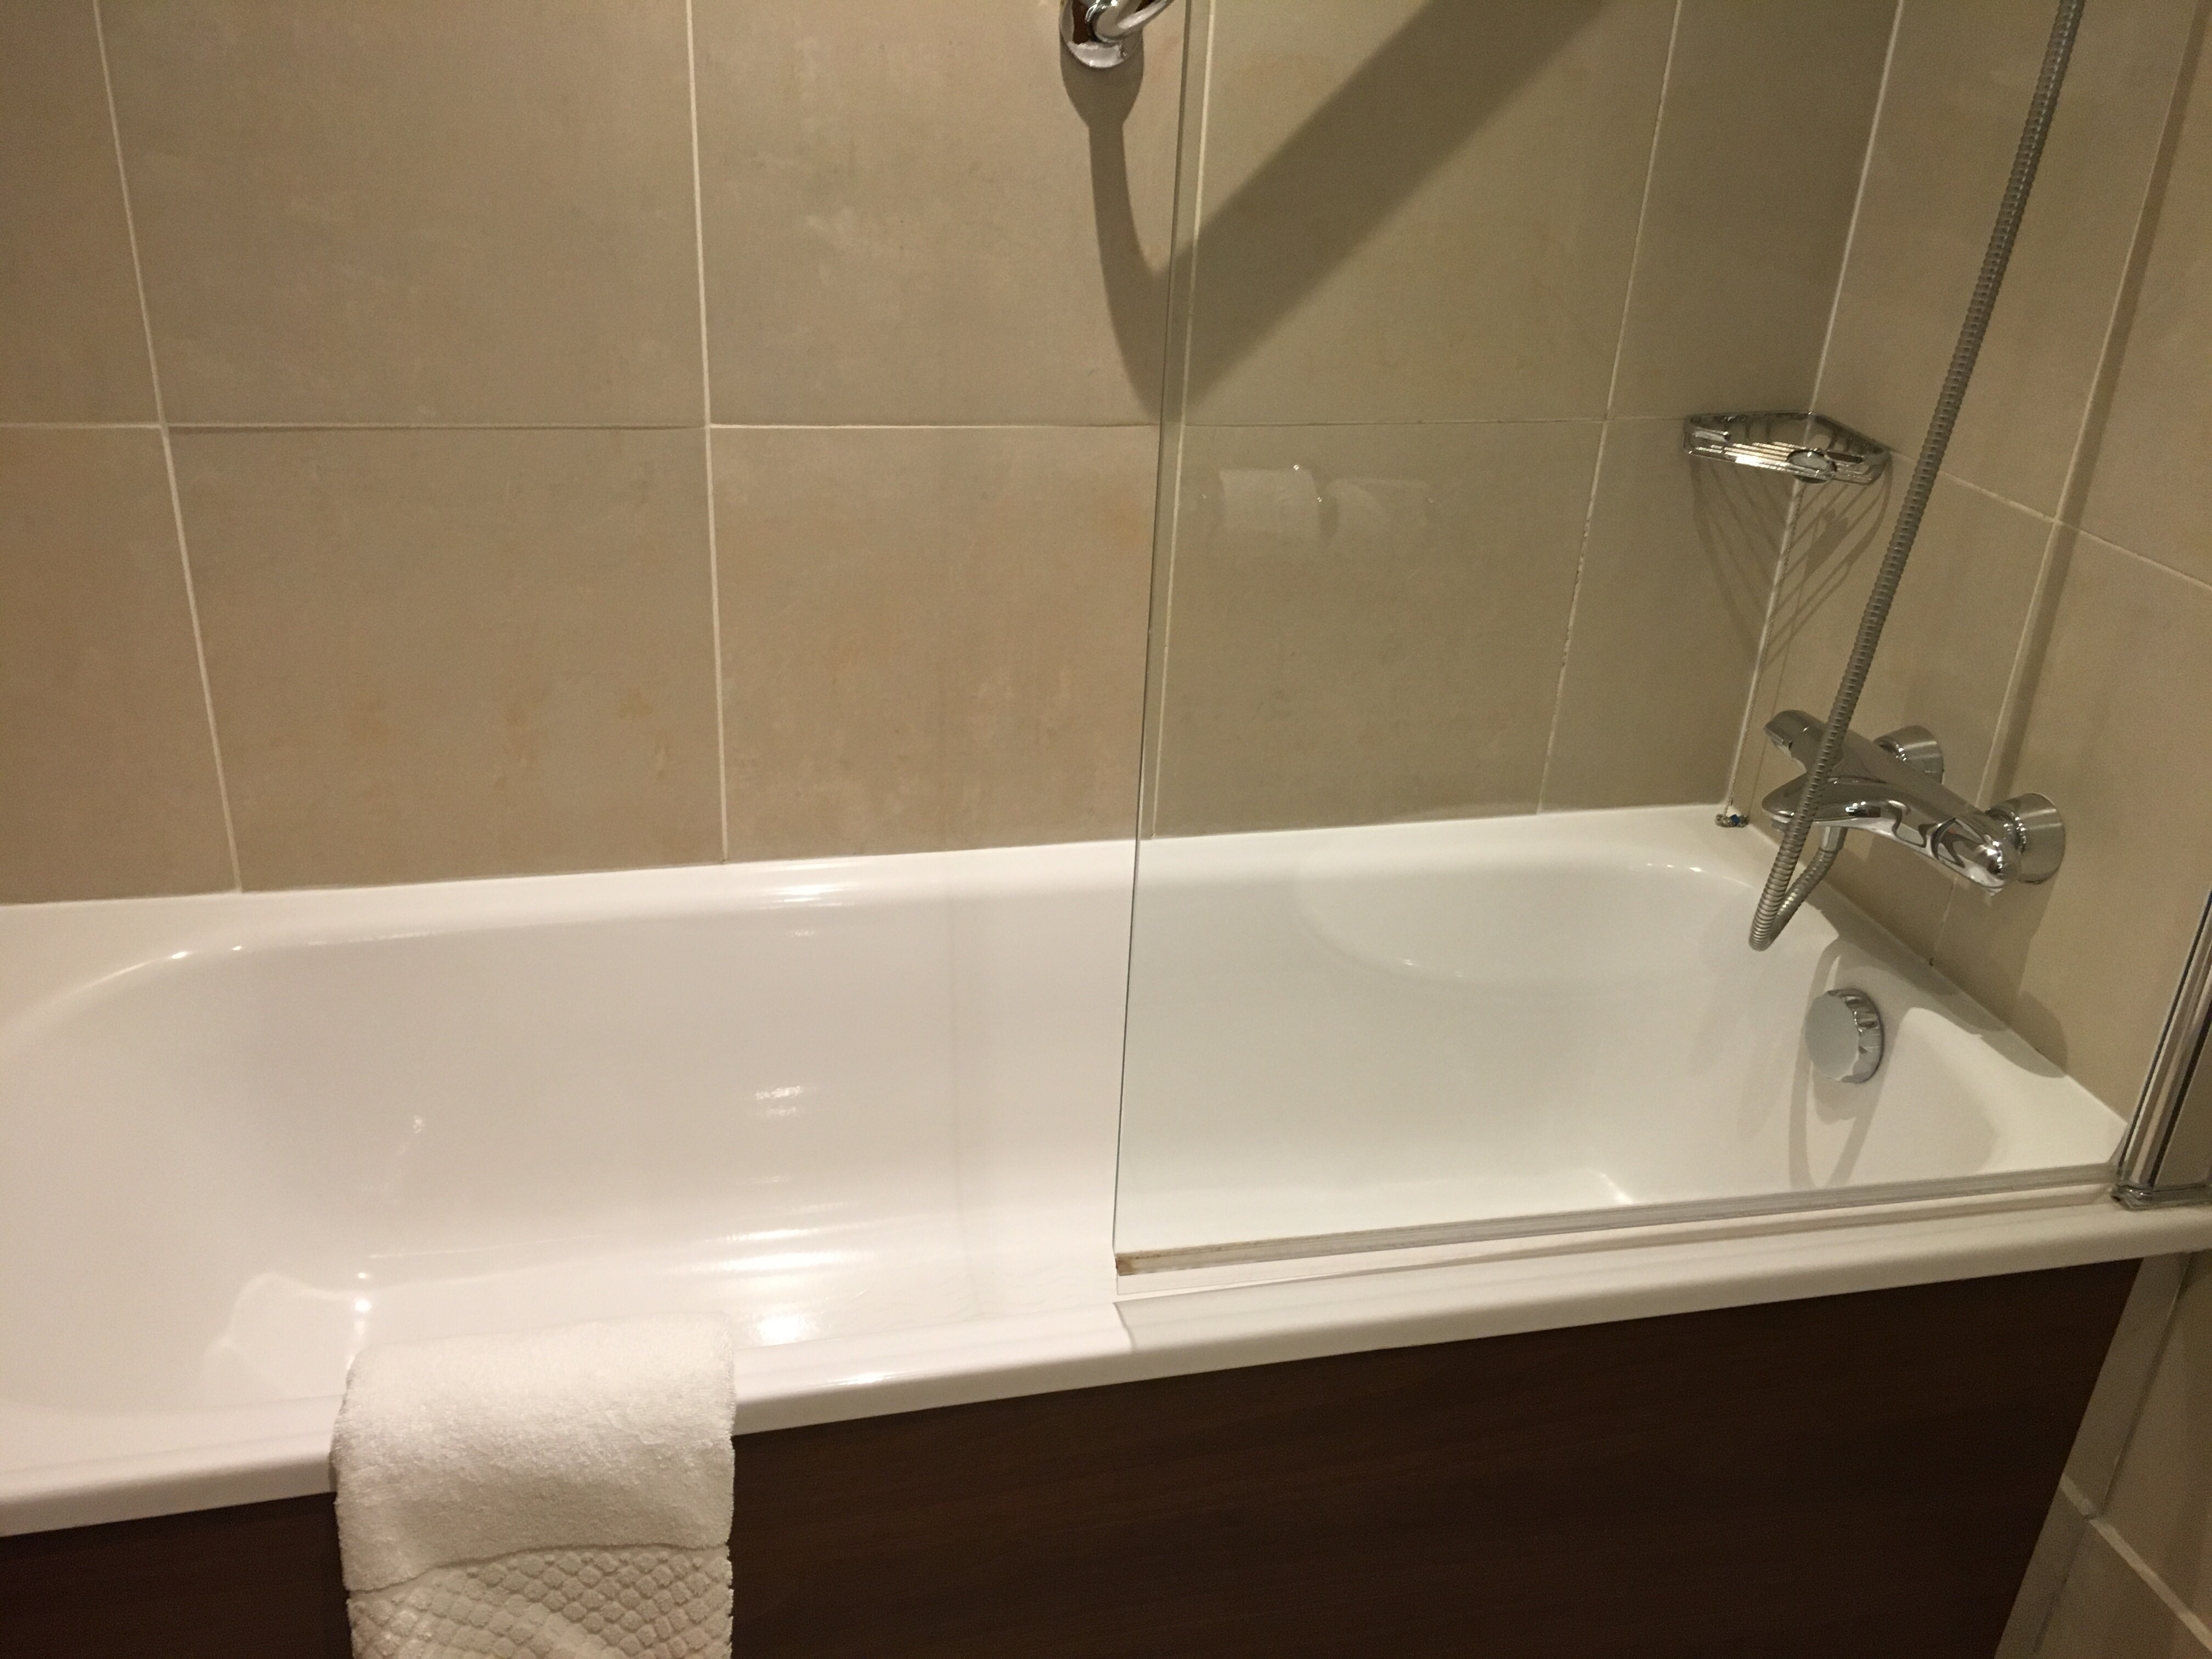 Bath and shower in our room